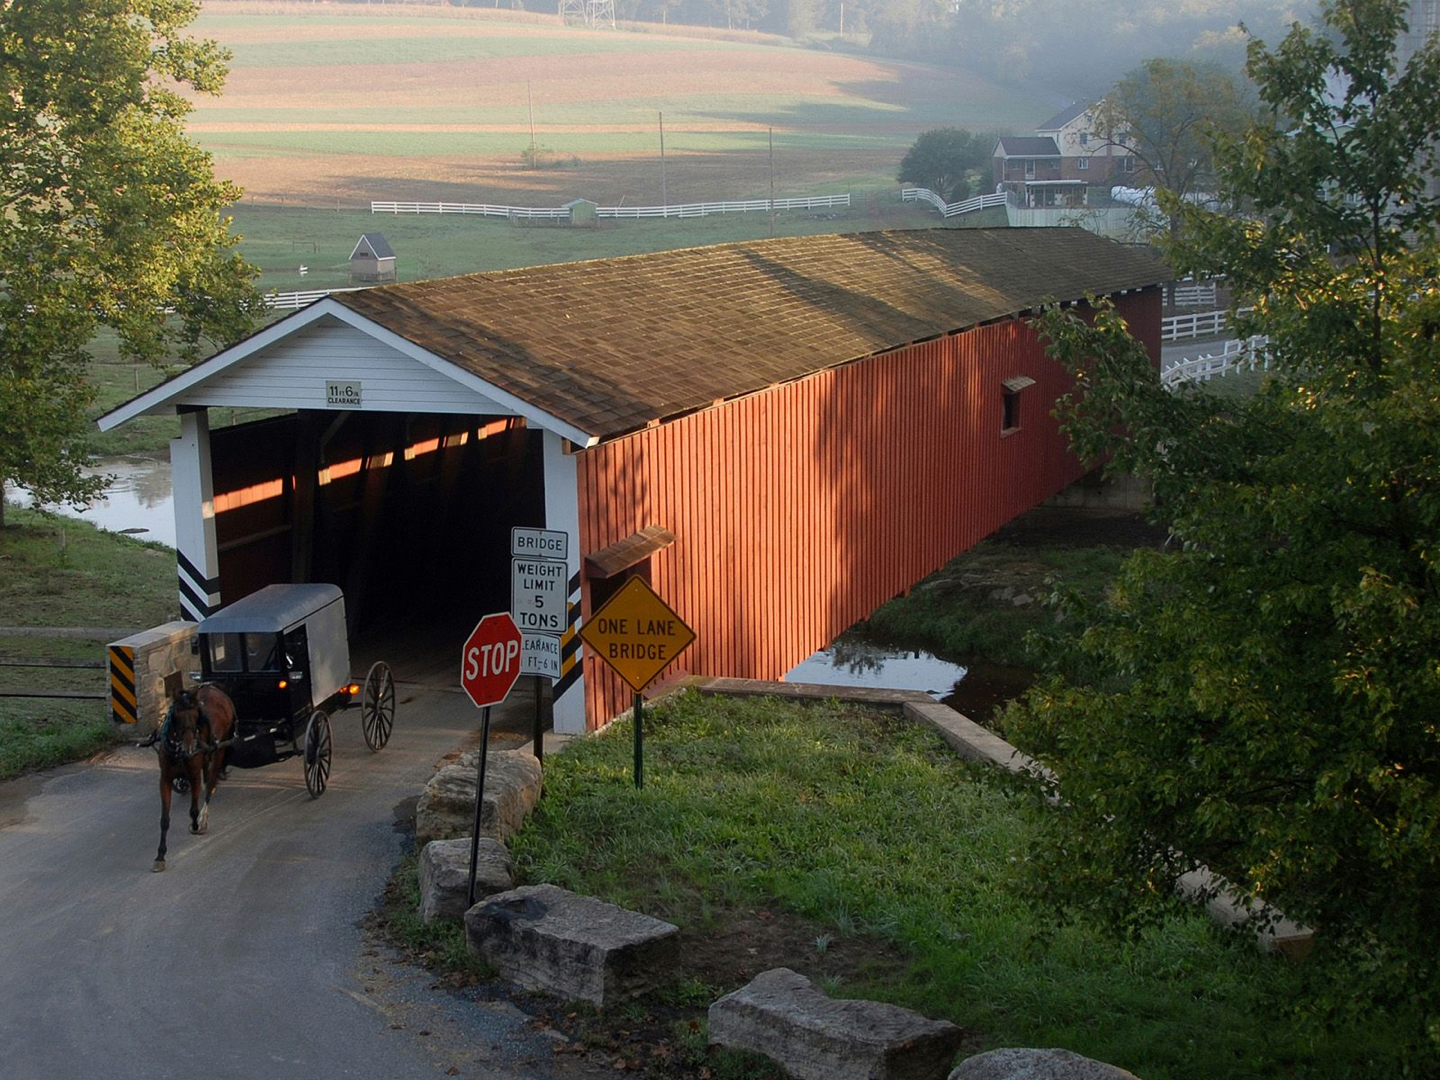 Amish buggy exiting a lng covered bridge